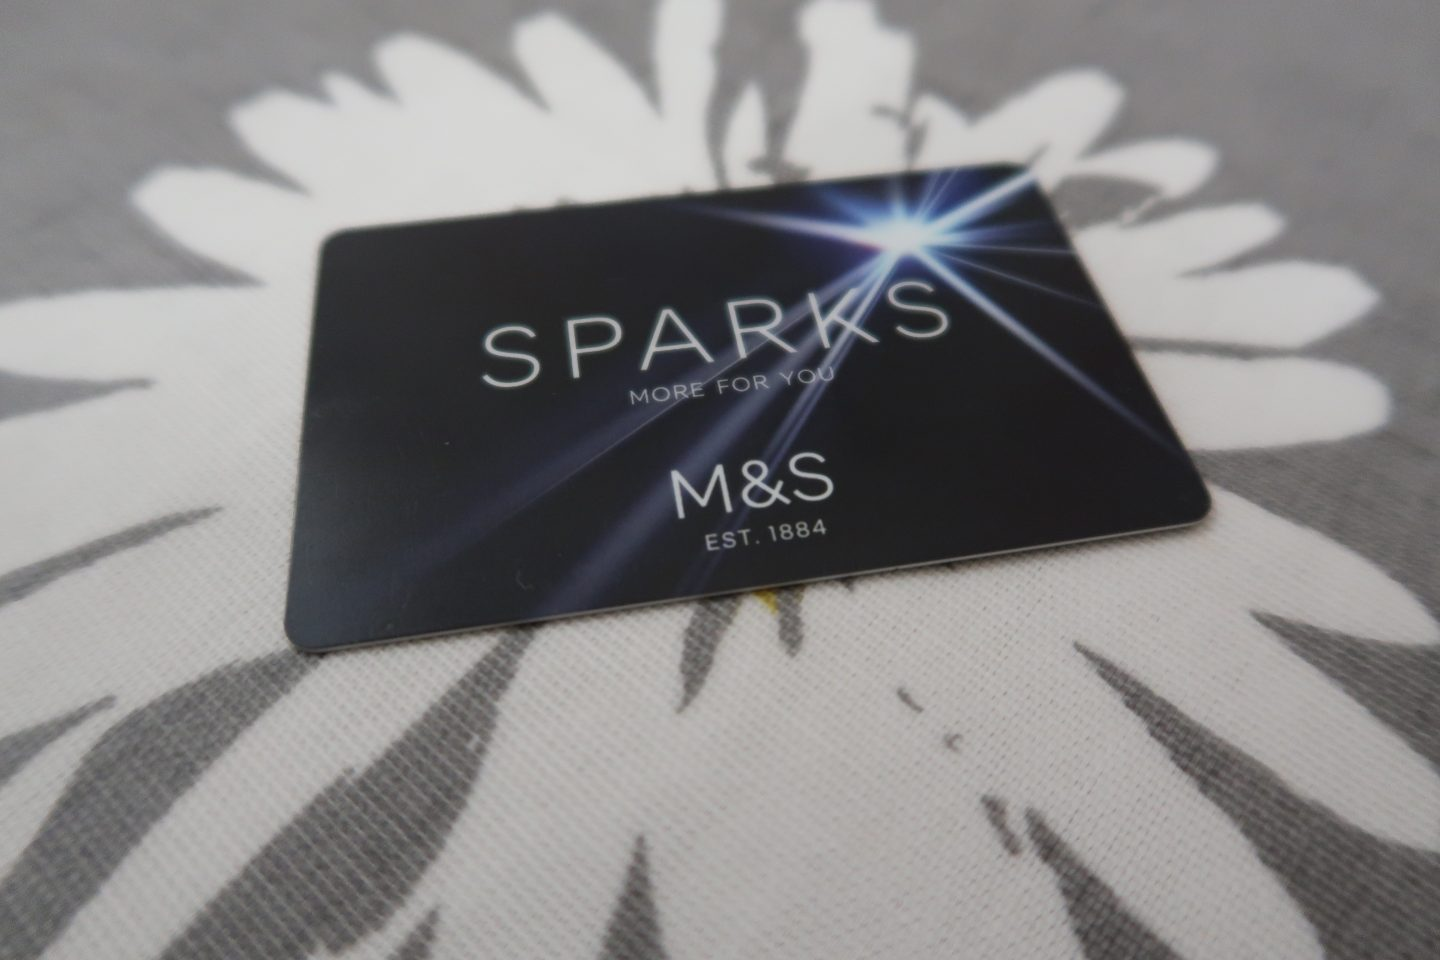 M&S Sparks loyalty card